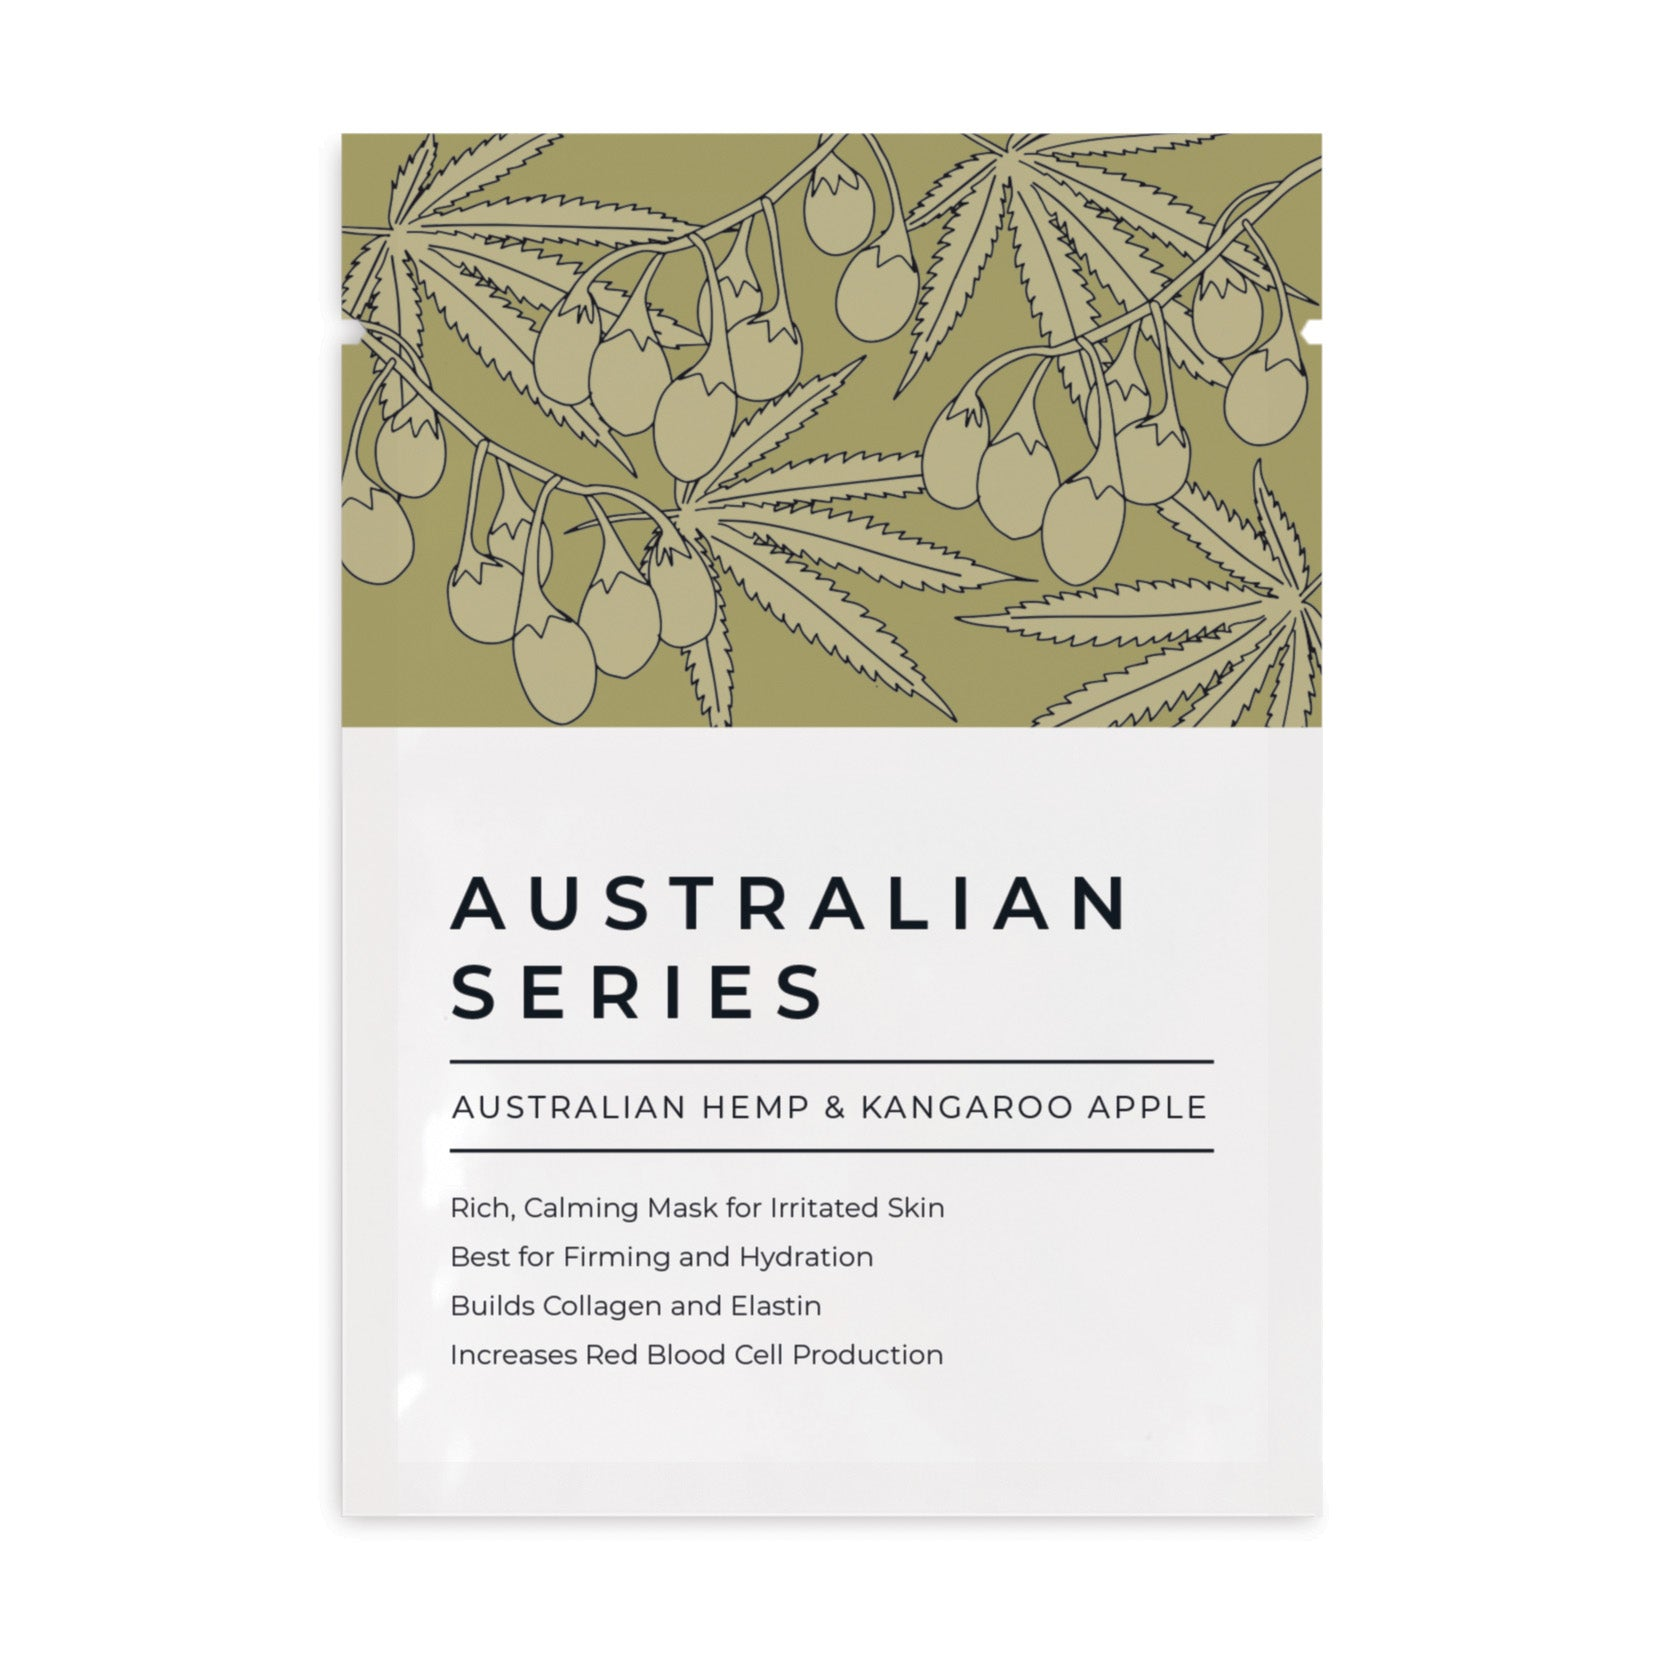 Australian Hemp and Kangaroo Apple - Soothe and Nourish